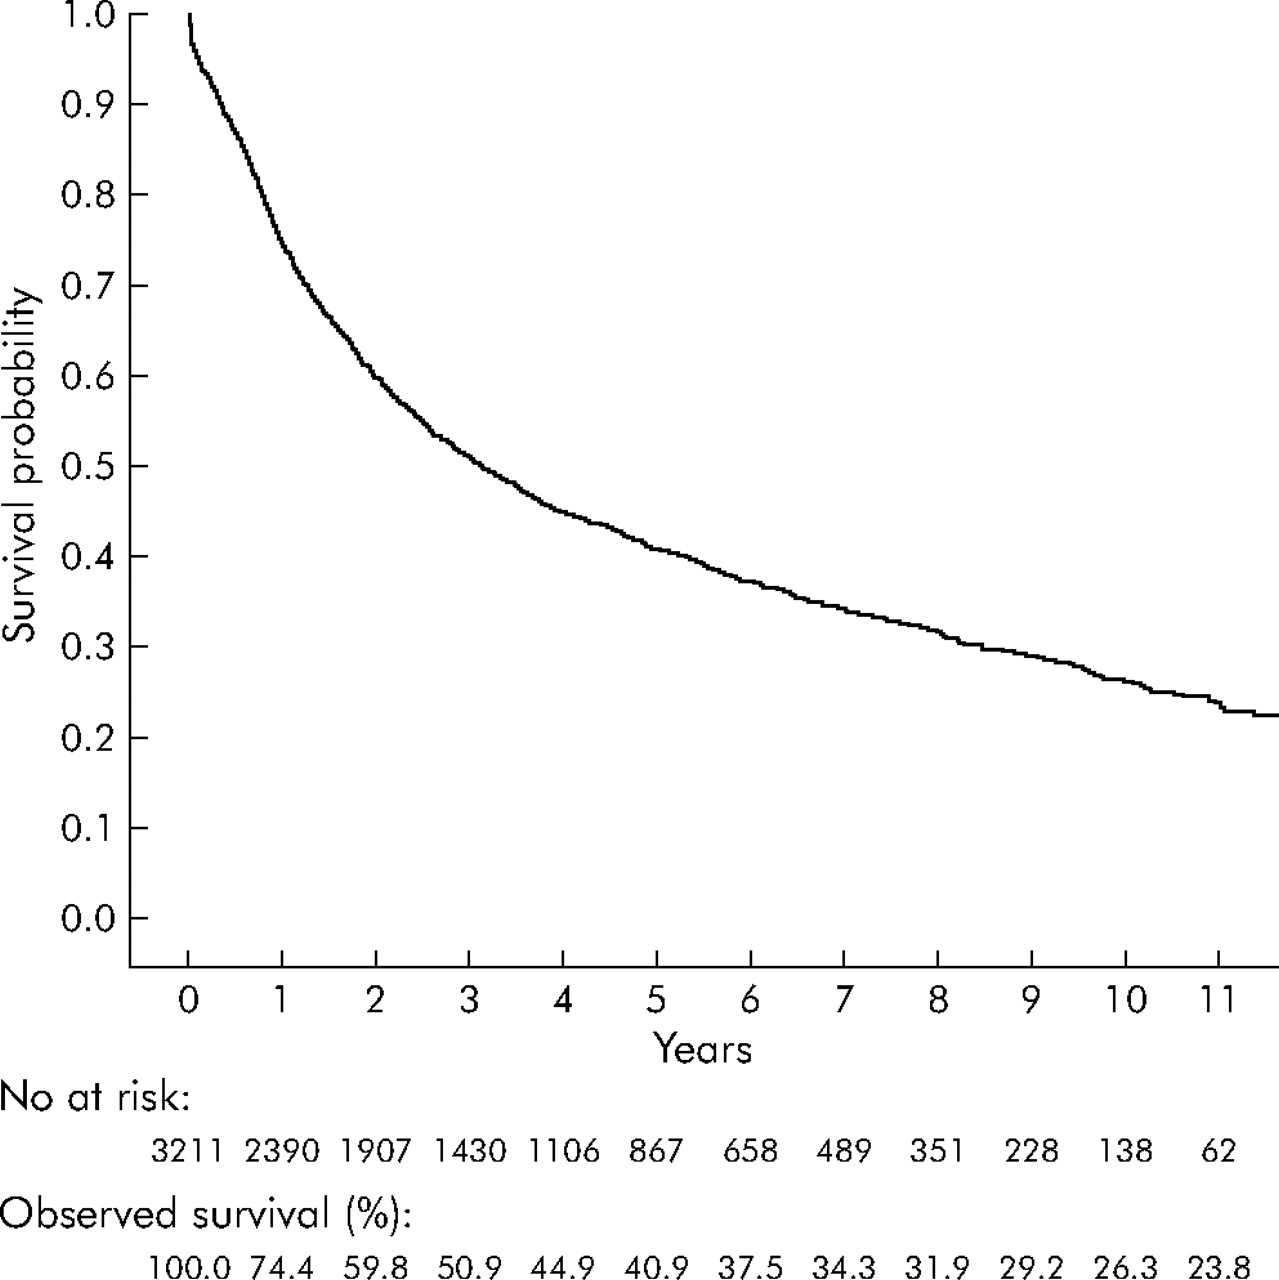 Survival after resection for primary lung cancer: a